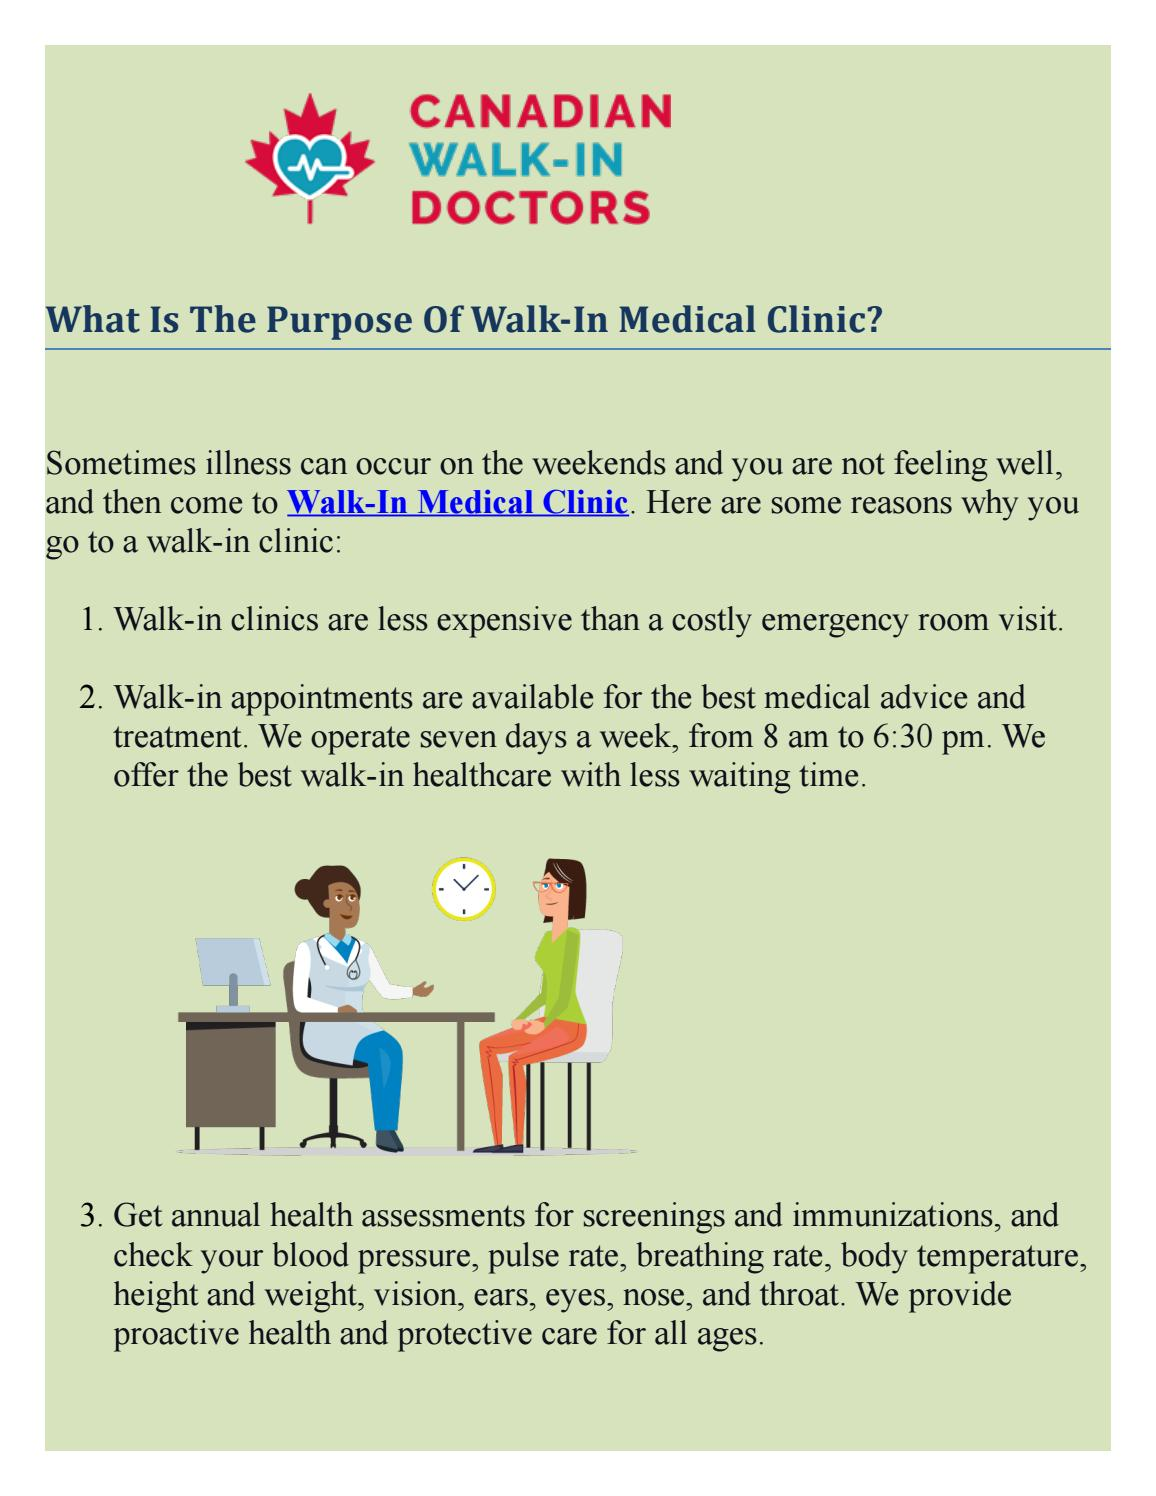 Best Walk-In Medical Clinic For Medical Treatment - Canadian Walk-in Doctors